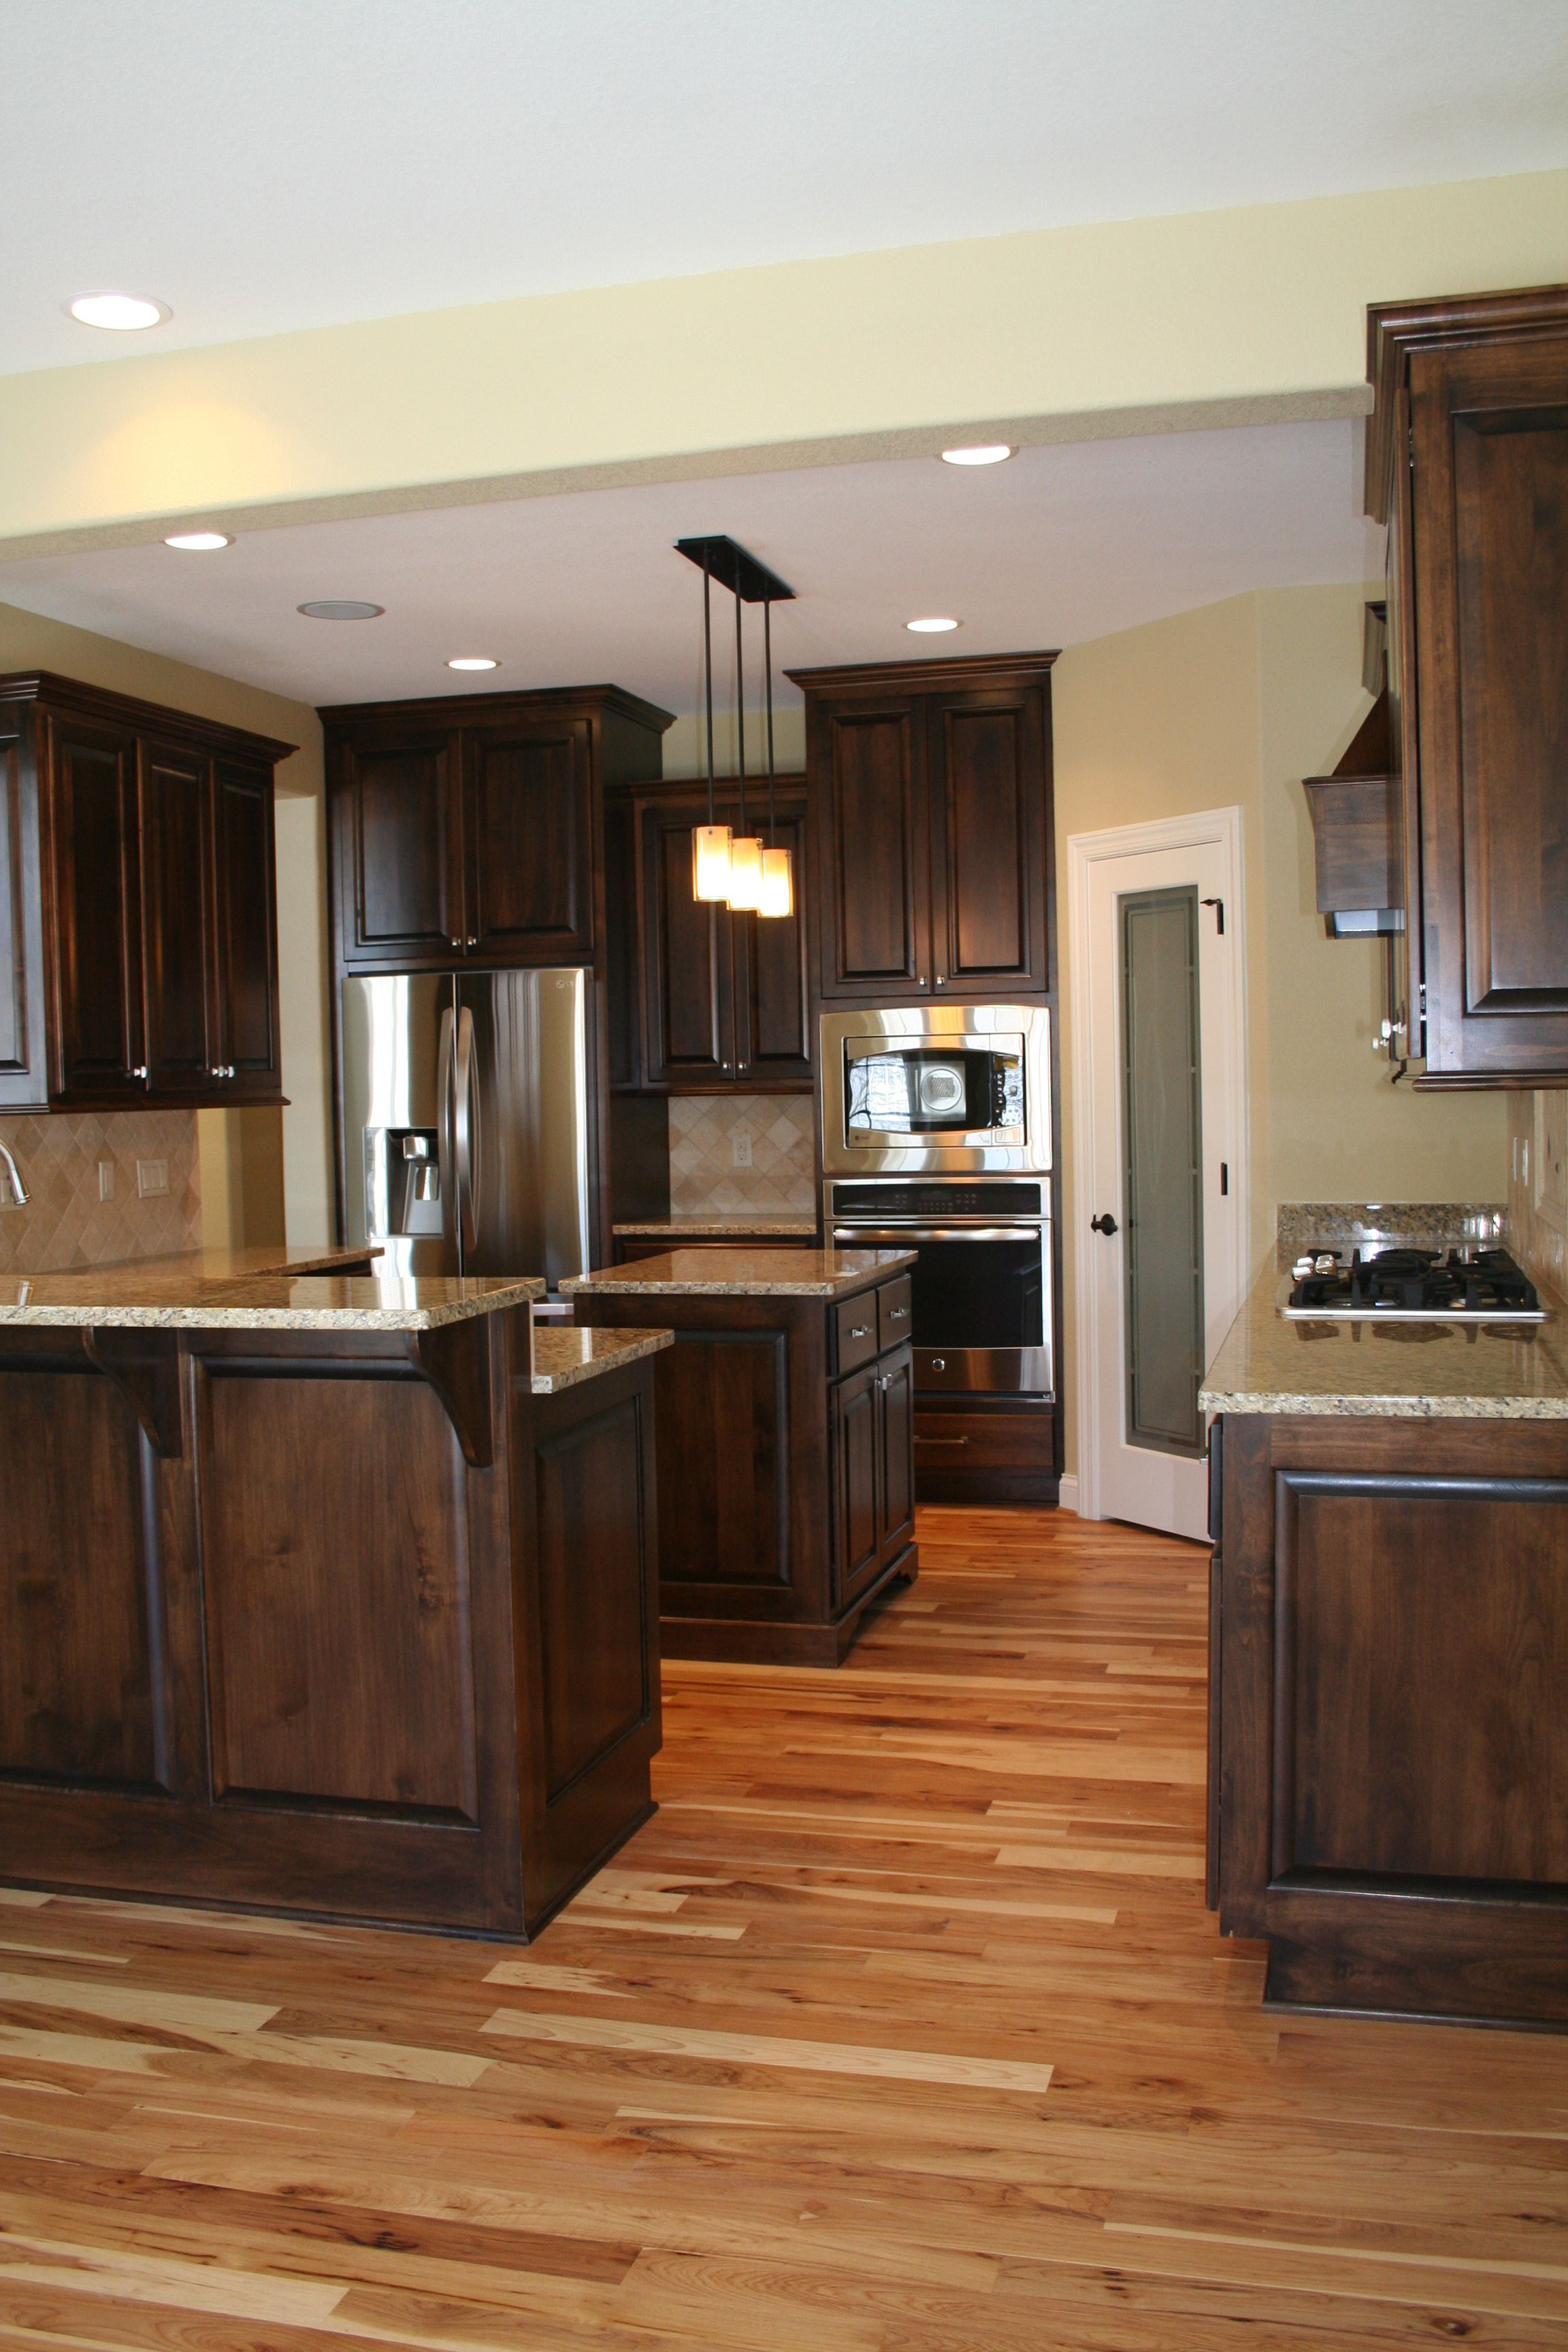 Alder Wood Cabinets Stainless Steel Appliances And Natural Hickory Hard Wood Flooring For More In Wood Floor Kitchen Hickory Kitchen Cabinets Hickory Kitchen